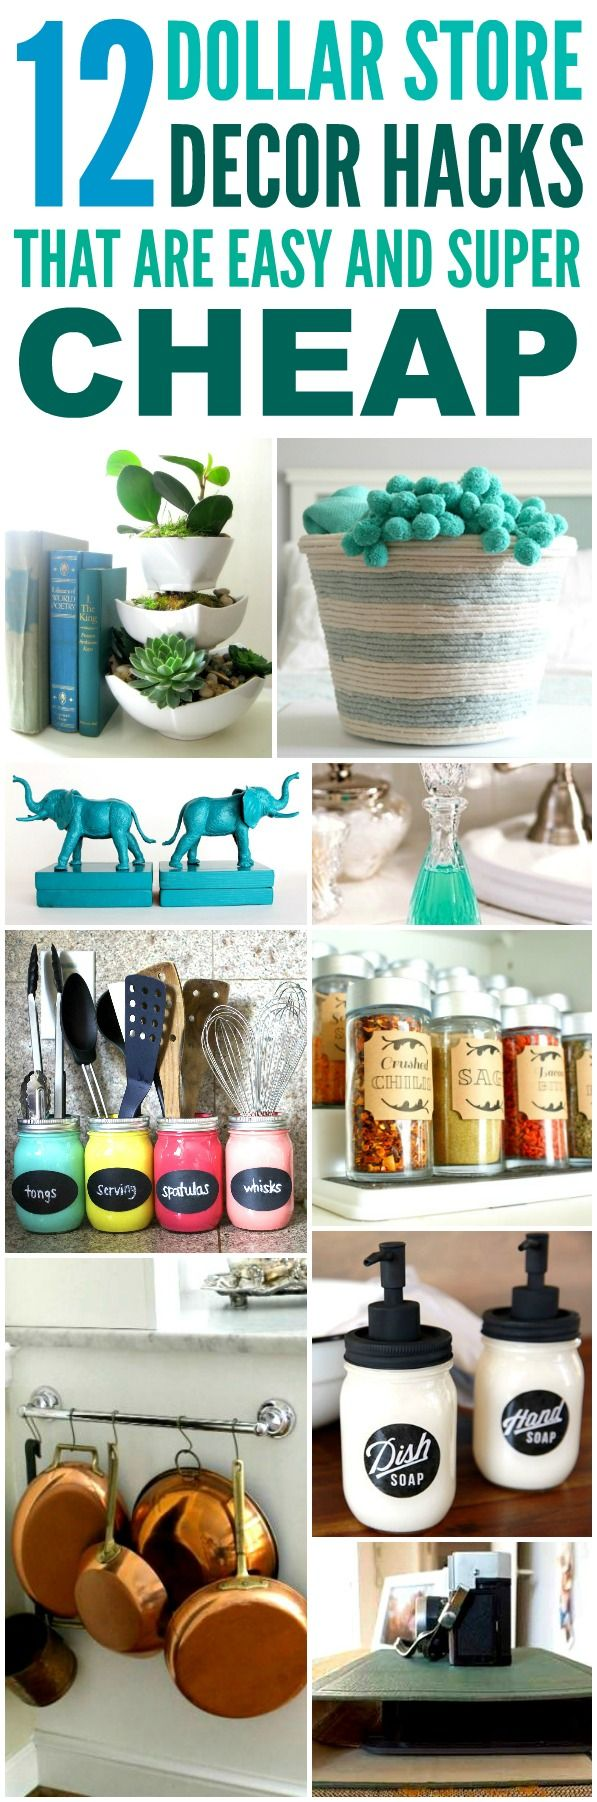 These 12 Dollar Store Decor Hacks are THE BEST! I'm so glad I found these AWESOM...